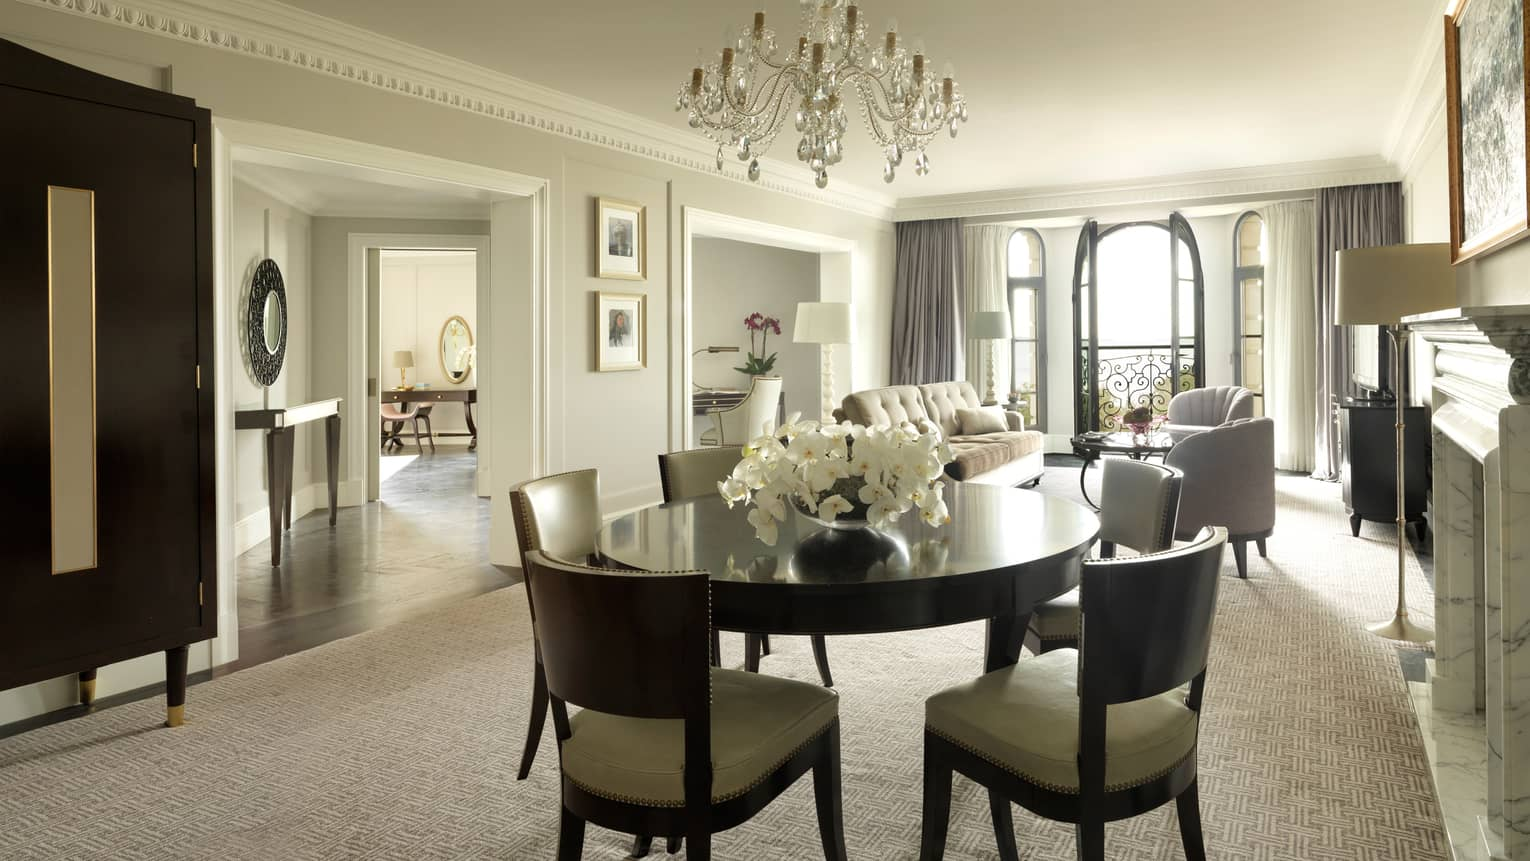 One-bedroom Suite round dining room table for 6, small crystal chandelier, living room, French doors to balcony in background